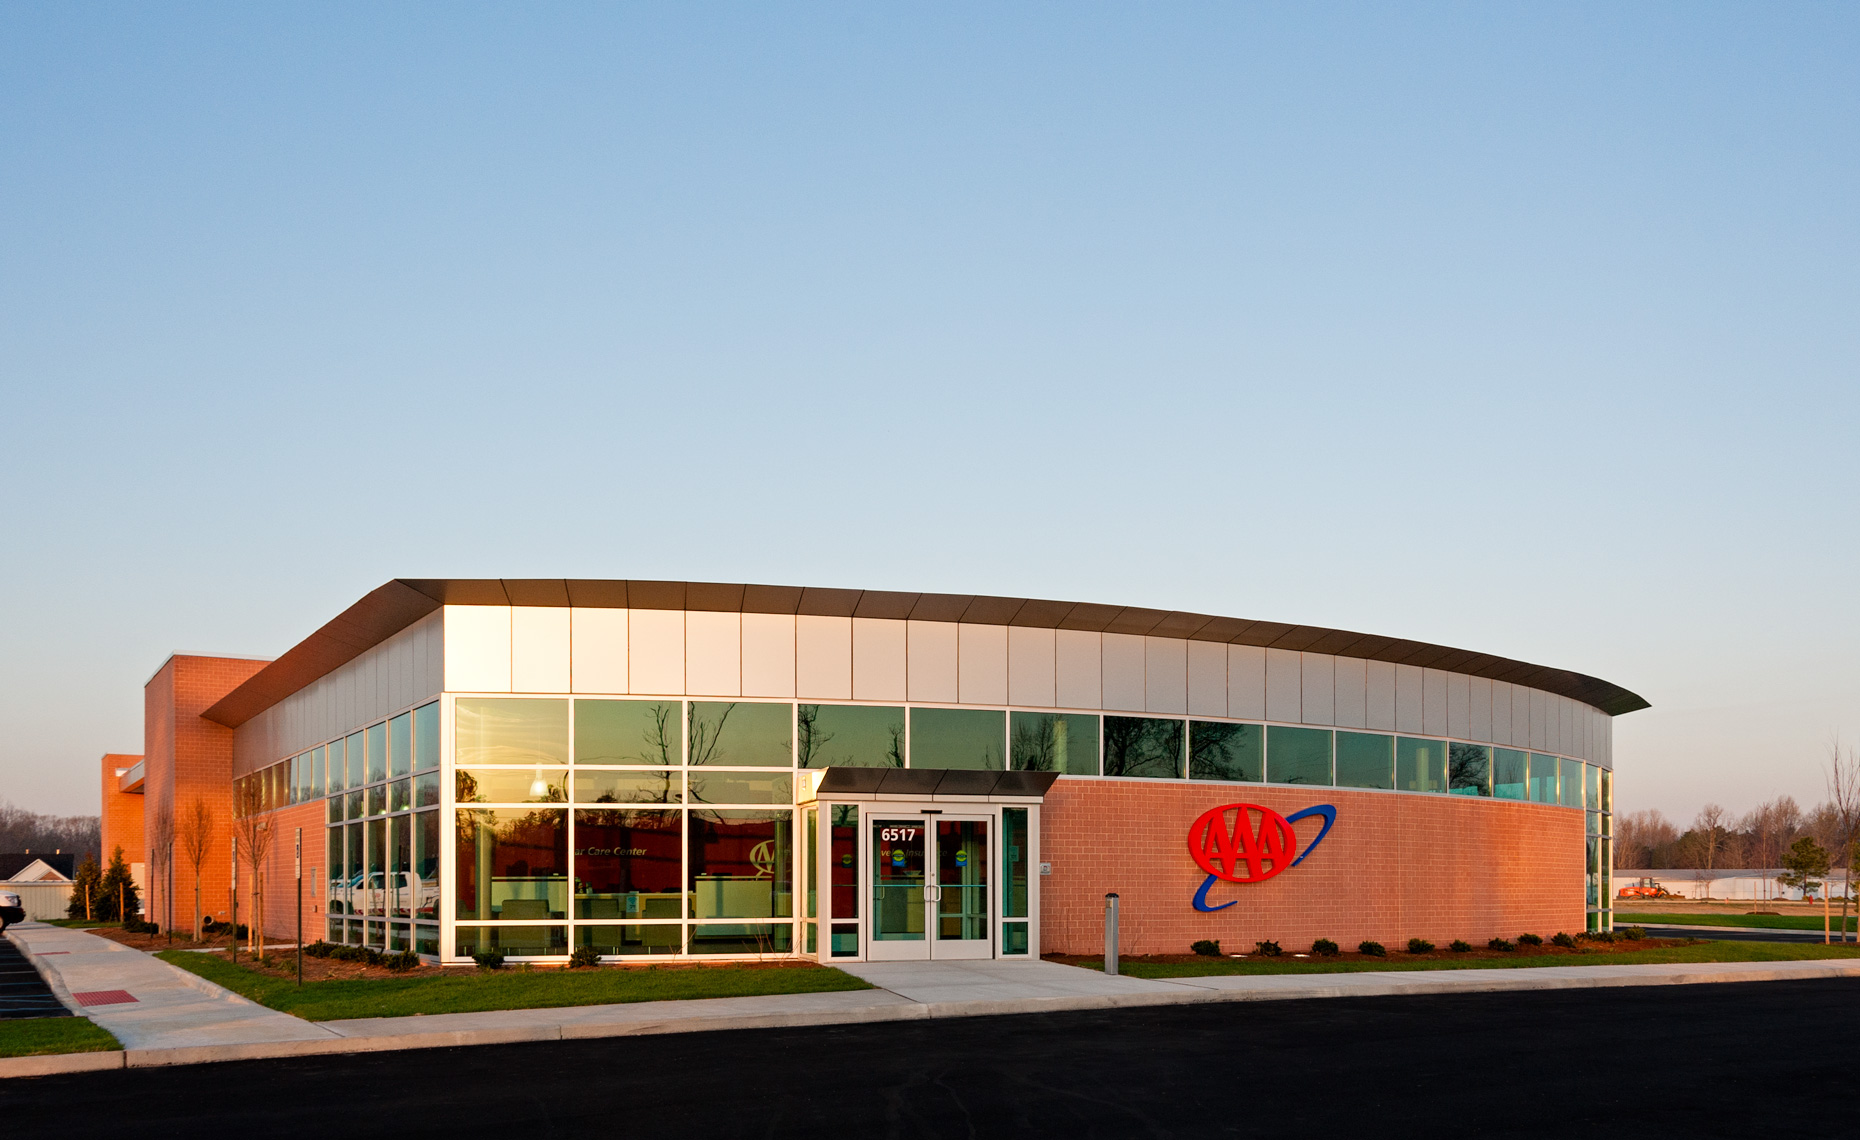 AAA Automotive Service Center